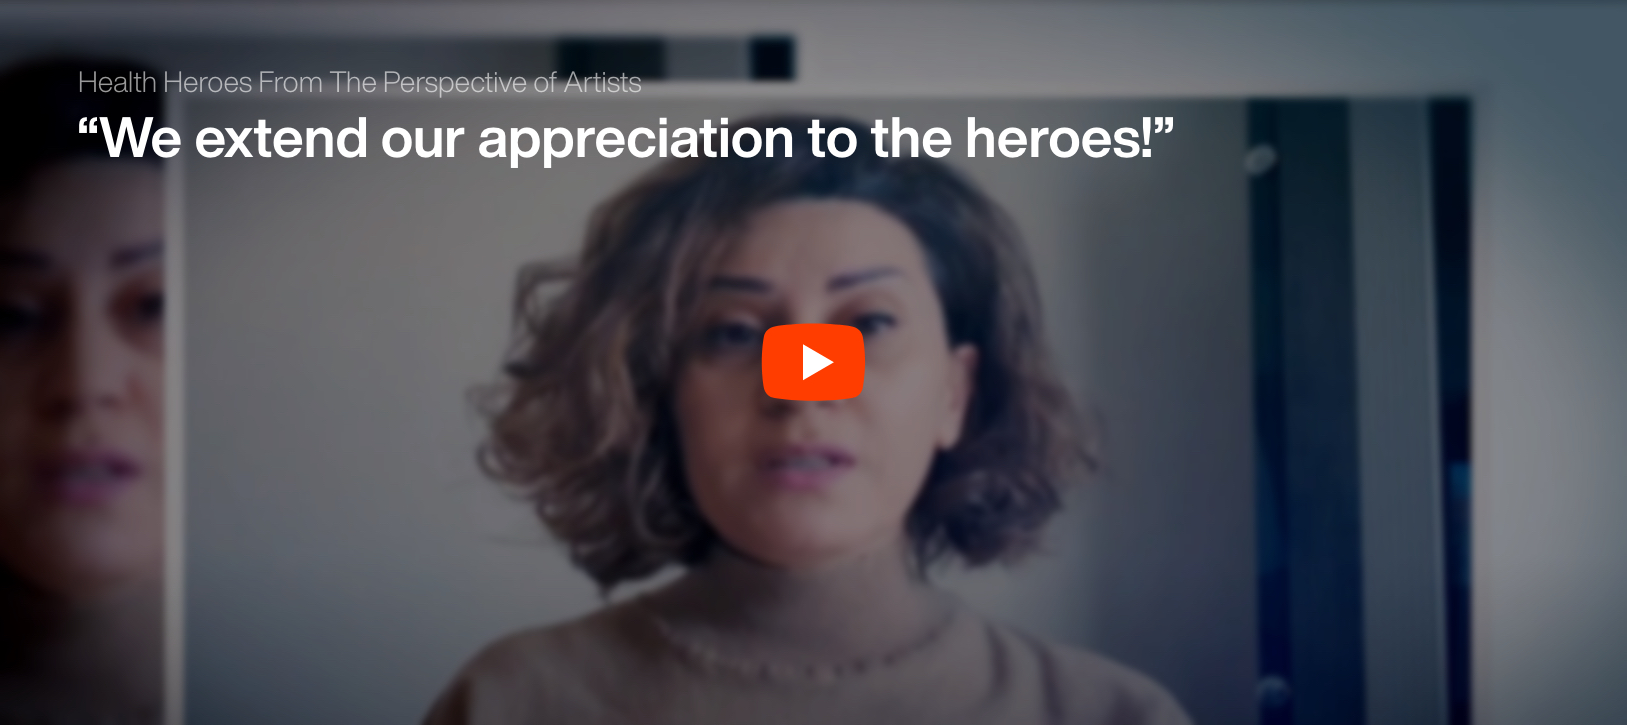 Health Heroes From The Perspective of Artists